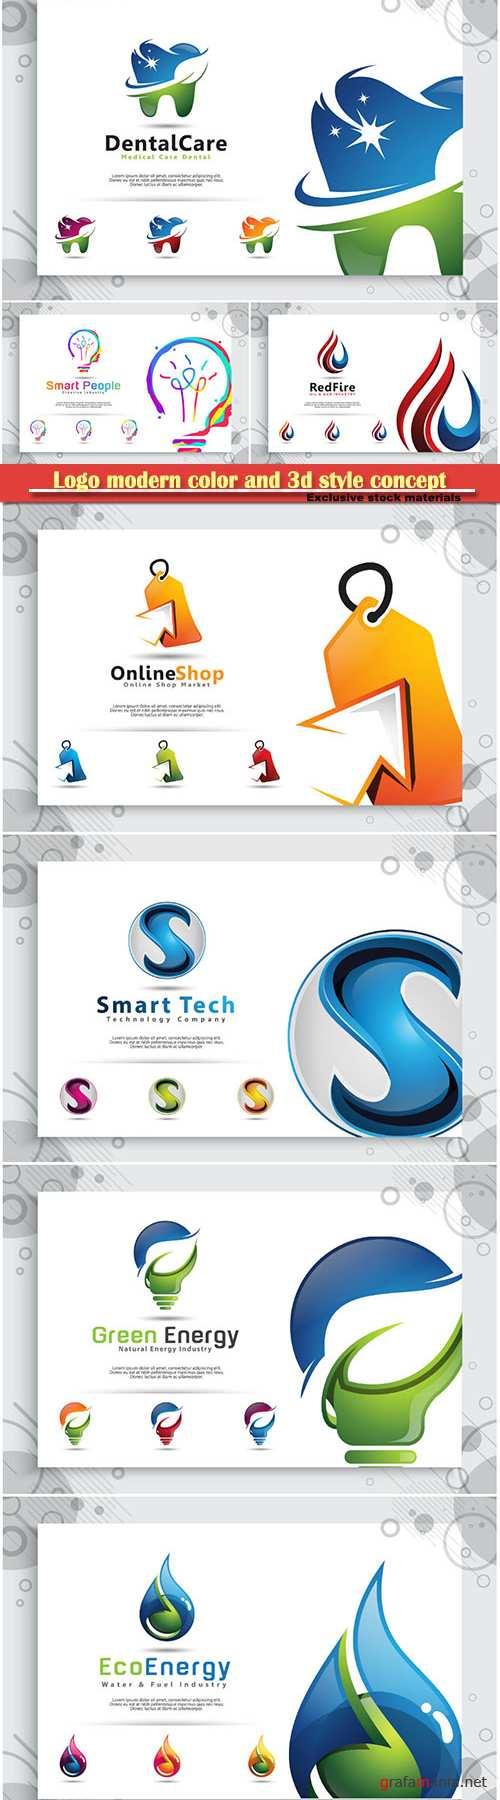 Logo modern color and 3d style concept, business and company identity